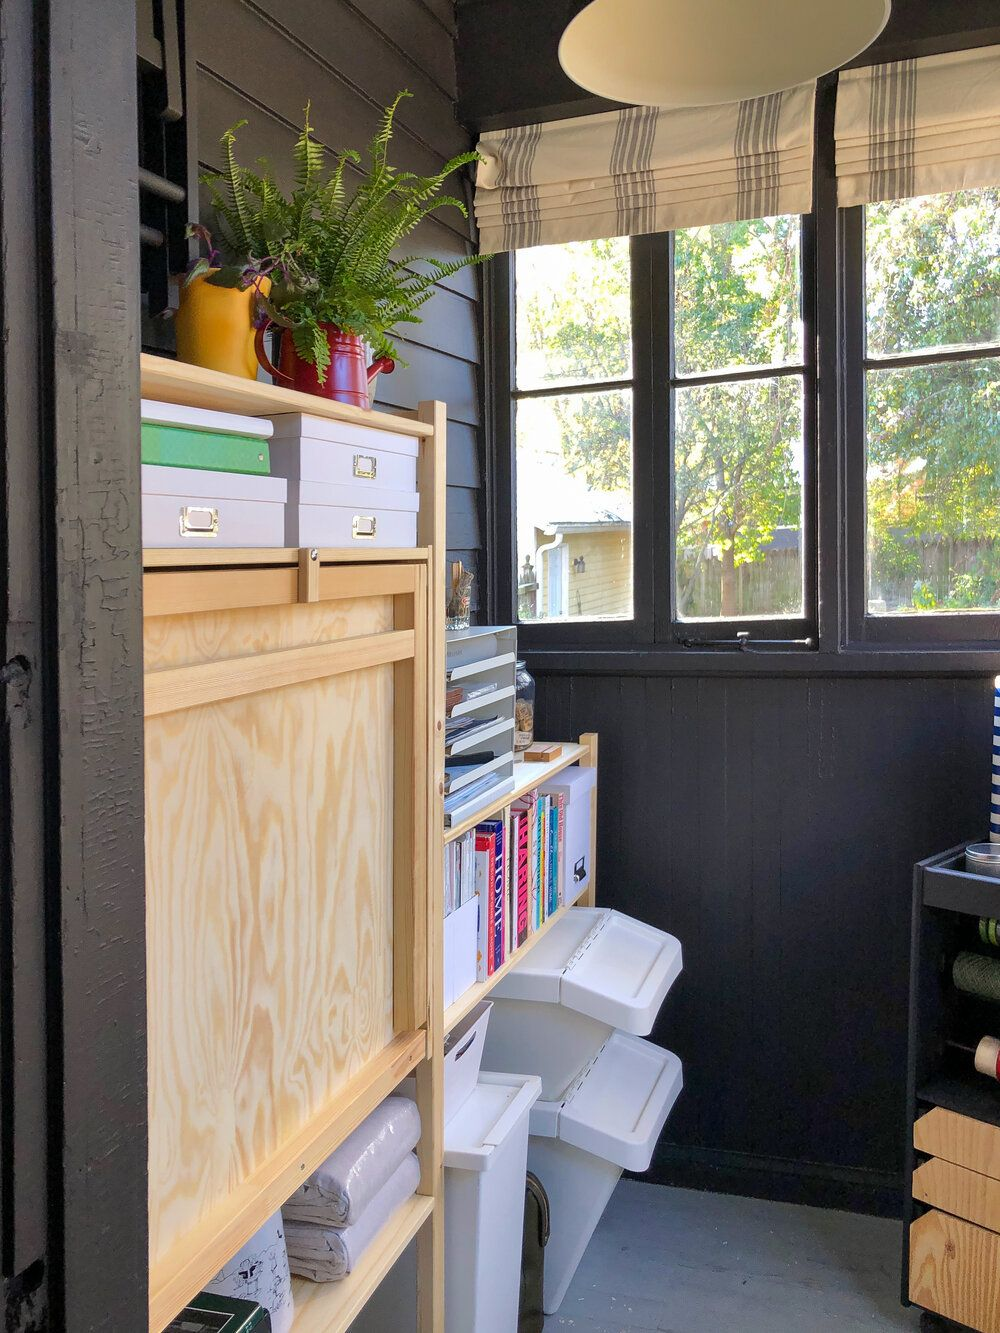 How To Turn A Small Space Into A Dream Craft Room Workspace On A Budget — T. MOORE HOME | Design, DIY, and Affordable Decorating Ideas #craftroommakeovers